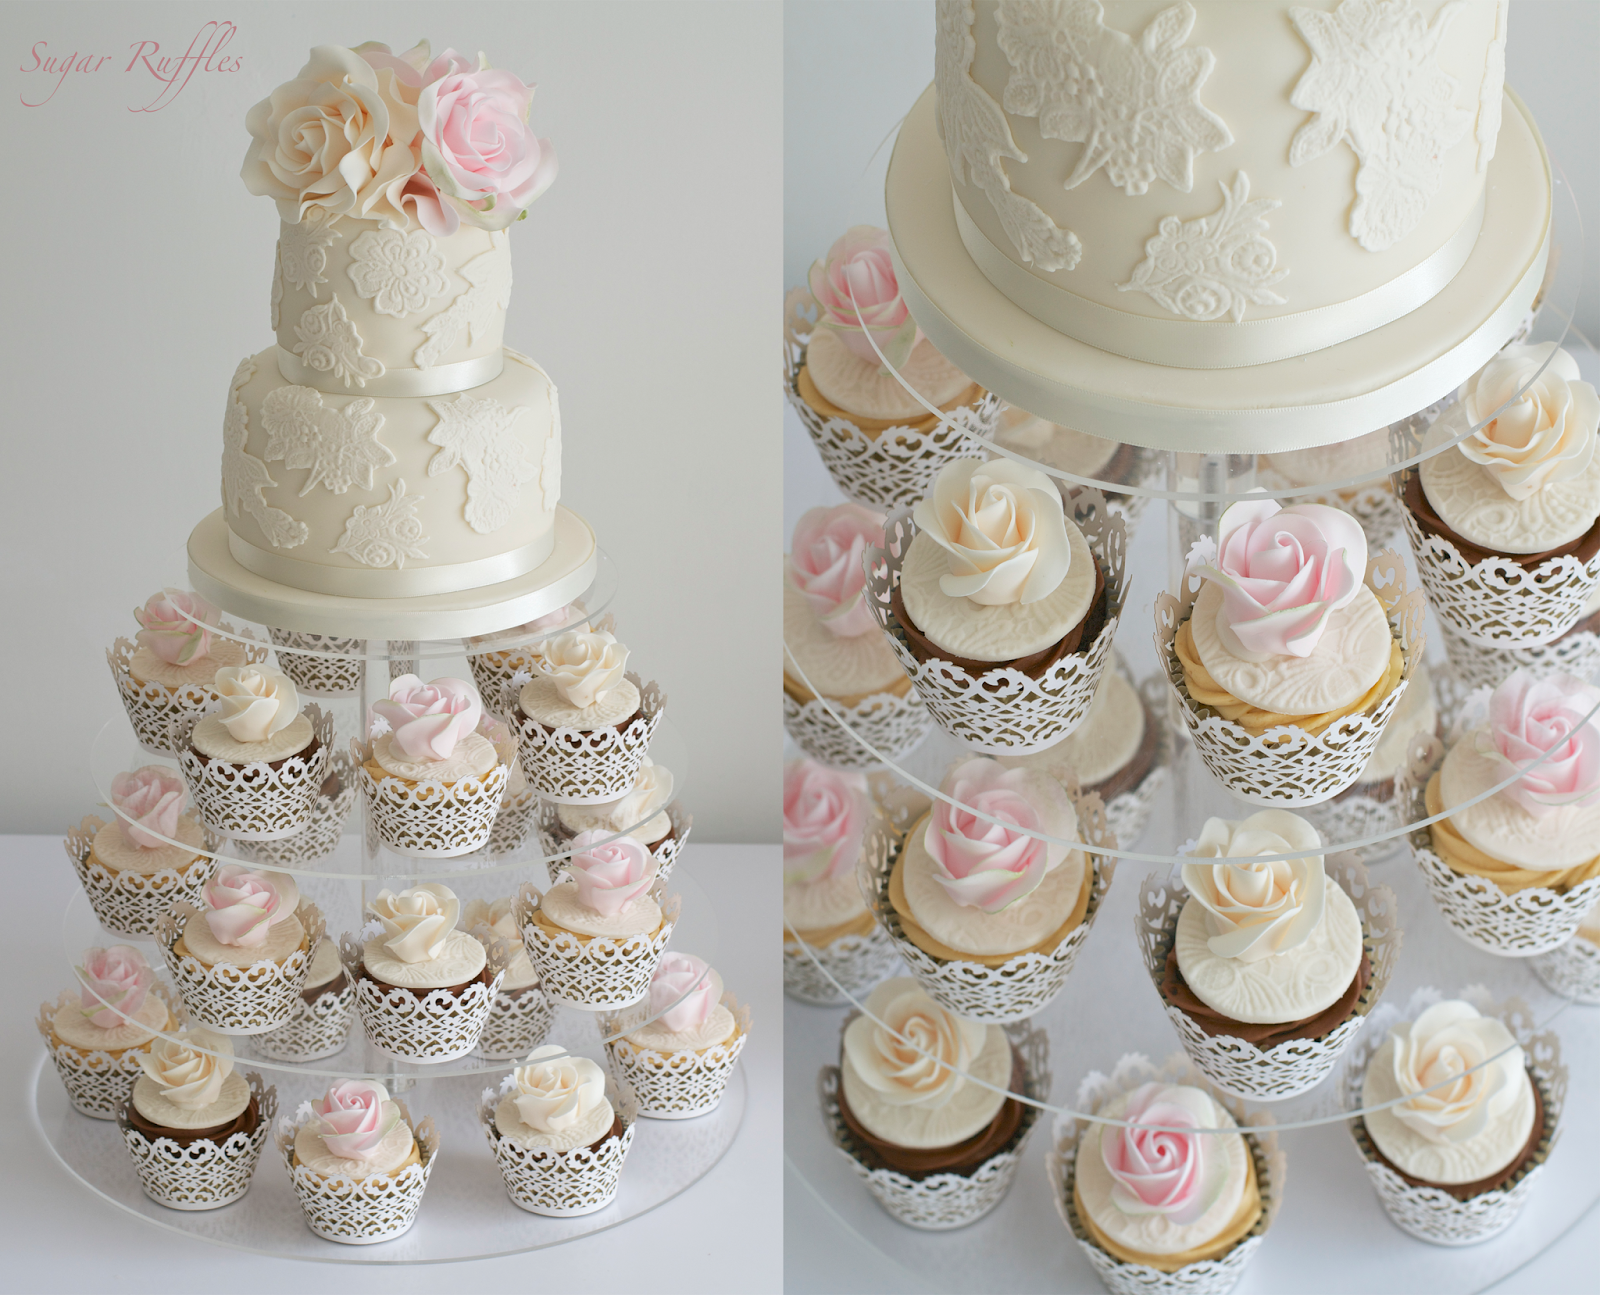 Wedding Cakes   CAKES WITH MATCHING CUPCAKES & CUPCAKE TOWERS ...